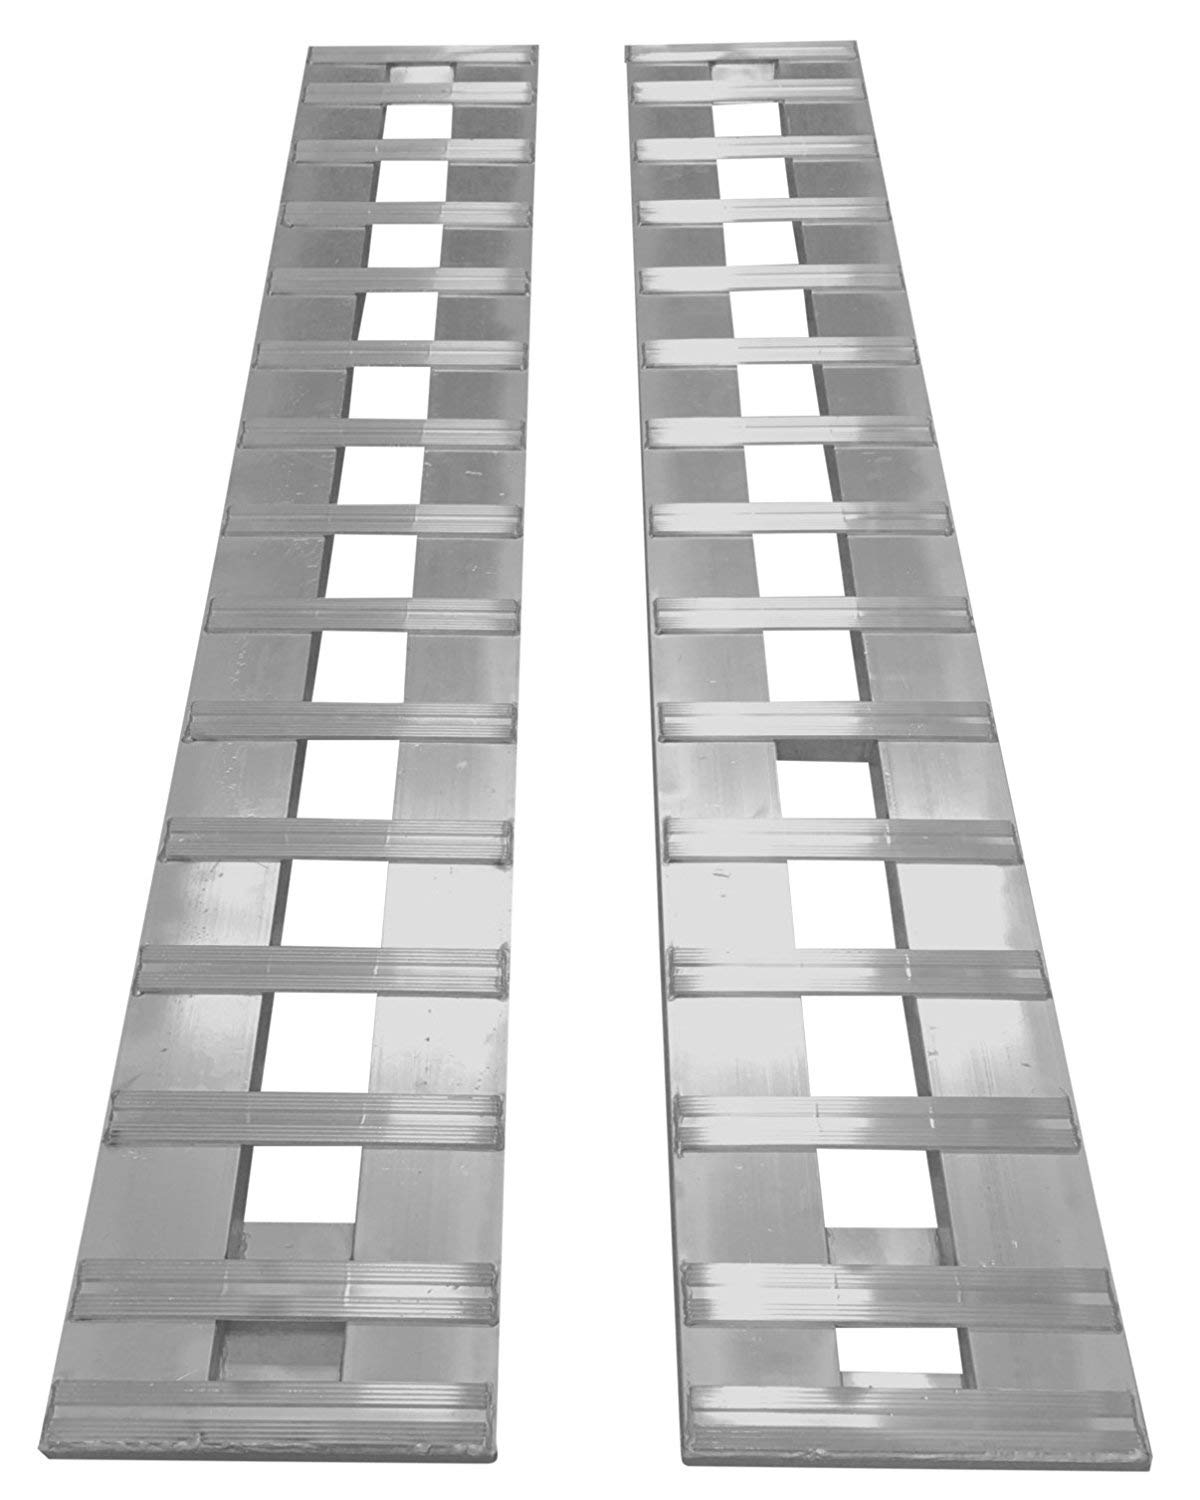 7 Aluminum Ramps Car ATV Truck Trailer Ramps 2 RAMPs = 6000lb Capacity 84 84 7 Long Set of 2 Br Premium Material